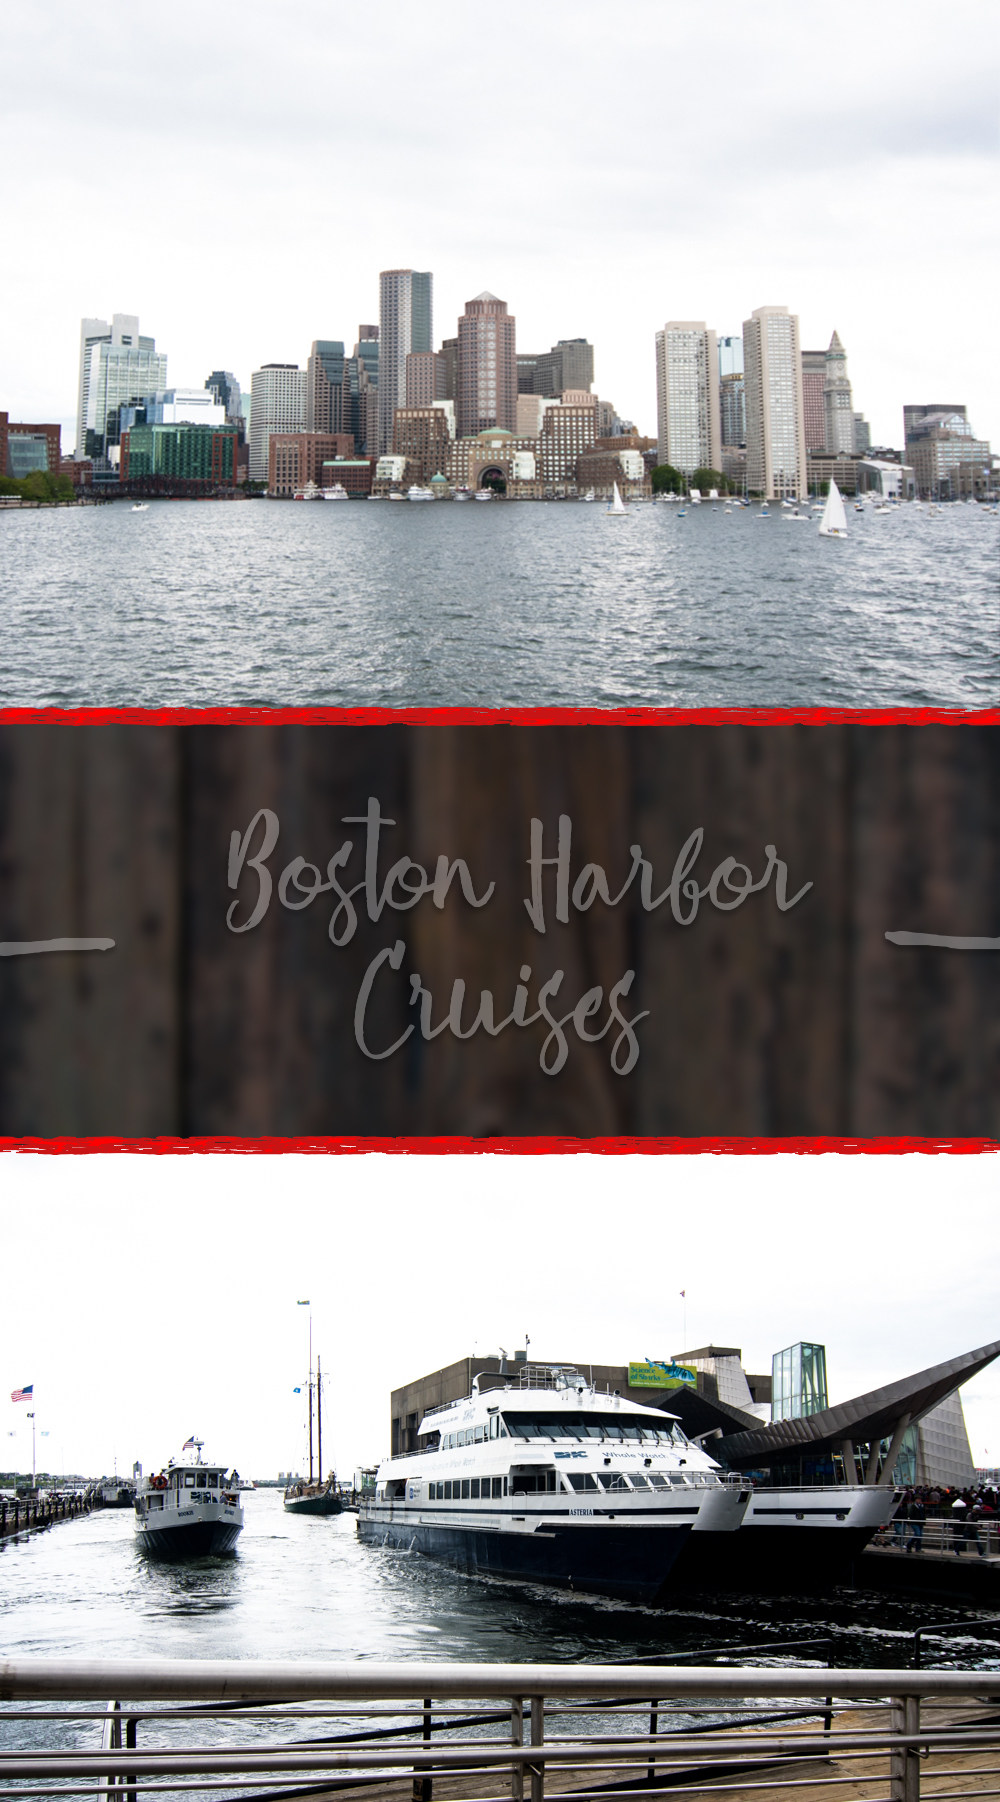 Planning a trip to Boston? Check out Boston Harbor Cruises while your are there! They offer a wide range of sightseeing cruises.